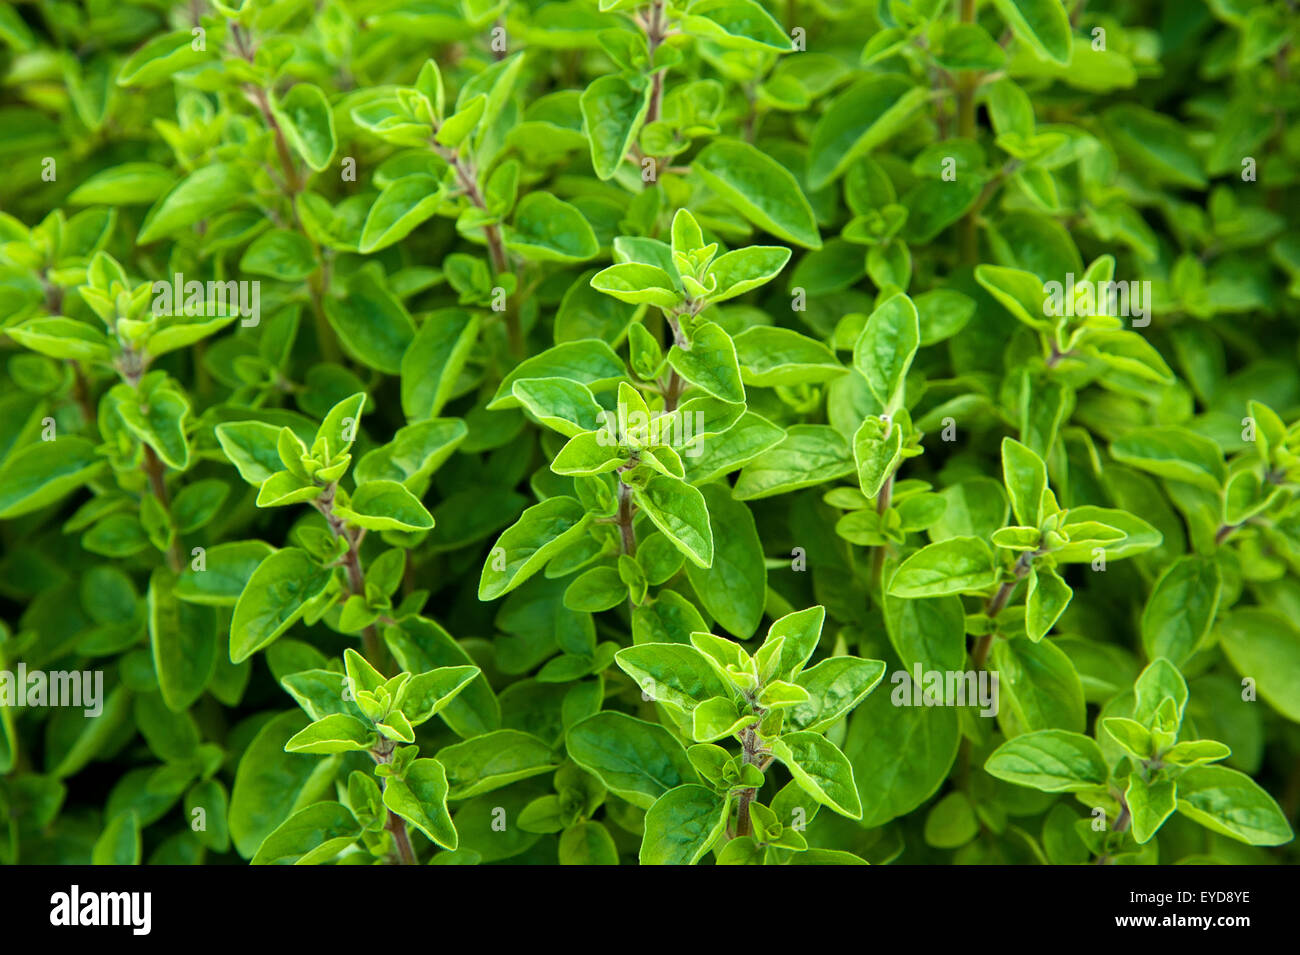 marjoram background isolated on white - Stock Image